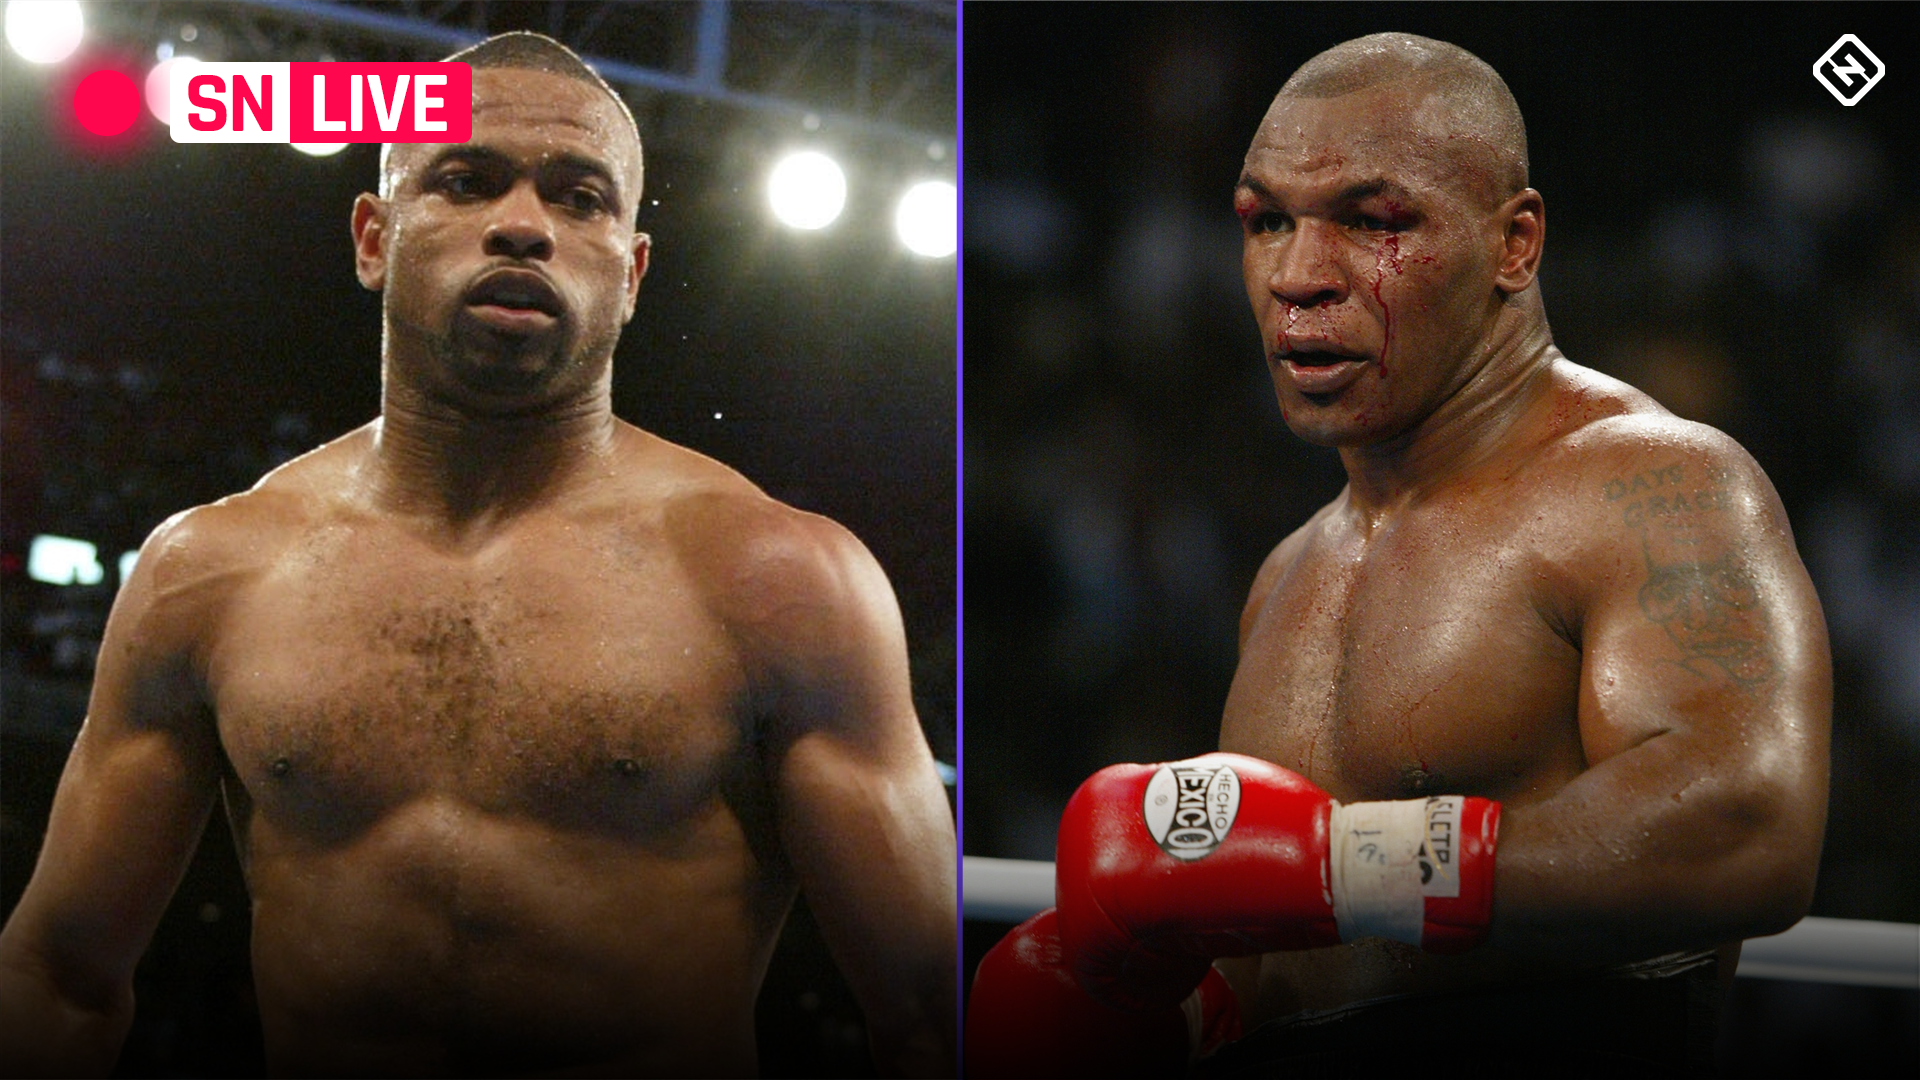 Mike Tyson vs. Roy Jones Jr. live fight updates, results, highlights from 2020 boxing comeback - sporting news